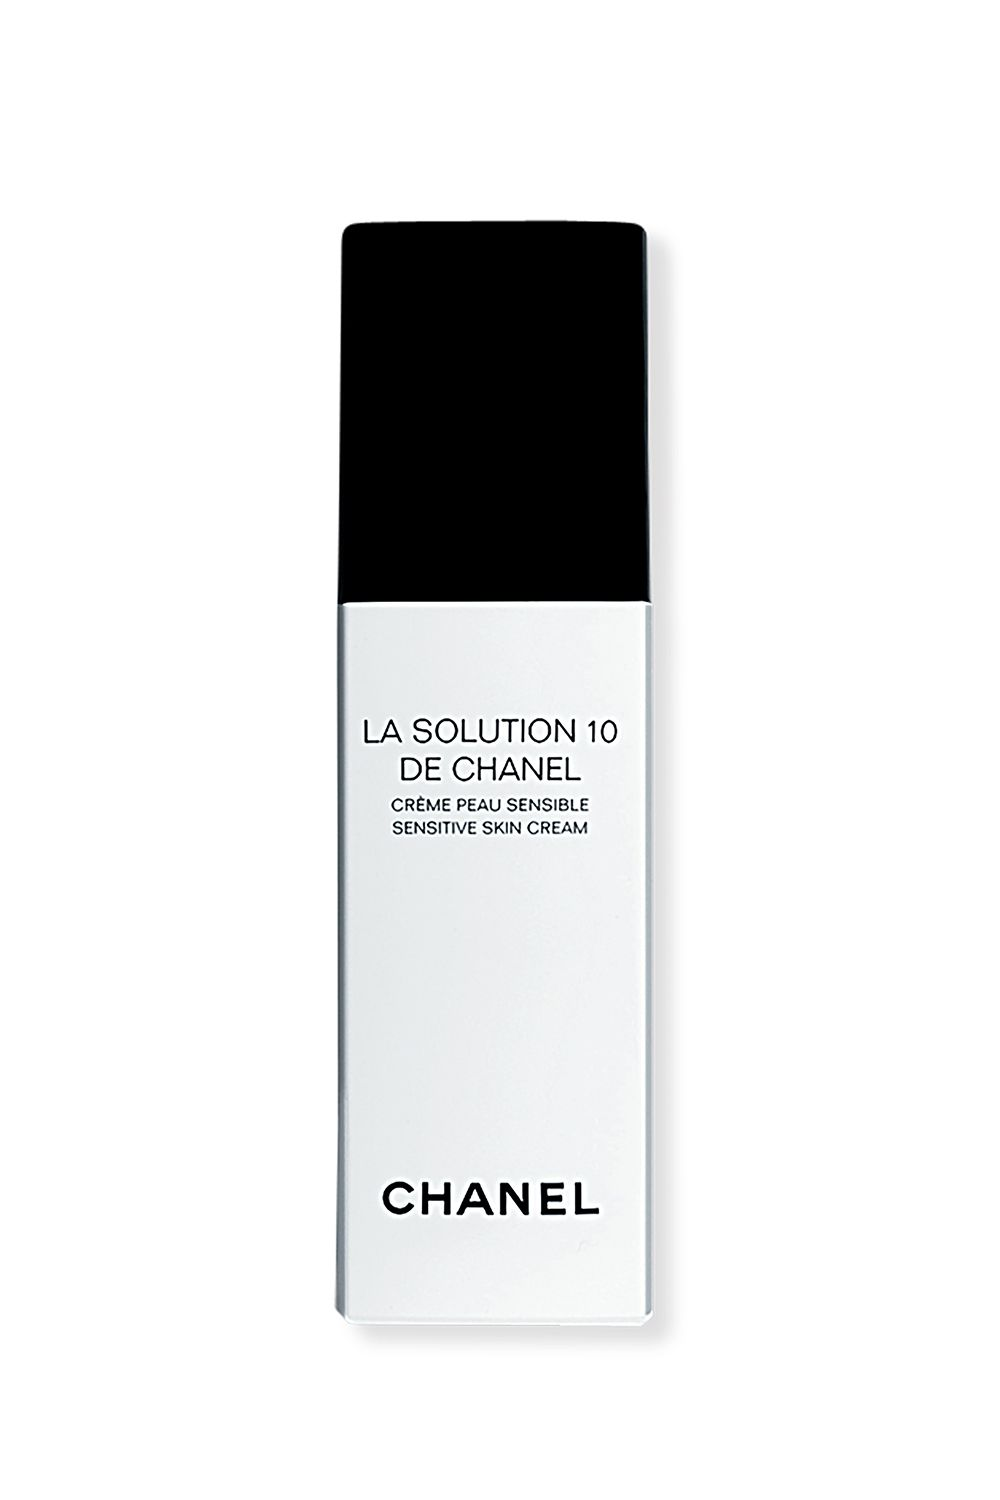 "<p>When you think of sensitive-skin formulas, ho-hum clinical options probably come to mind. Not so with this luxe, creamy moisturizer. It's made with just 10 ingredients, each specifically selected to help soothe reactive skin, including hydrating glycerin and antioxidant-rich silver needle tea extract. </p><p>Chanel La Solution 10 de Chanel Sensitive Skin Cream, $110; chanel.com. </p><p><strong data-redactor-tag=""strong"" data-verified=""redactor"">THE JURY SPEAKS: </strong></p><p>""Safe on sensitive skin and dermatologist-tested, this checks all the boxes for a top-shelf moisturizer.""<br><br><br> ""What your skin dreams of.""<br><br><br> ""Active ingredients that actually work, and a perfectly delicious texture.""</p>"